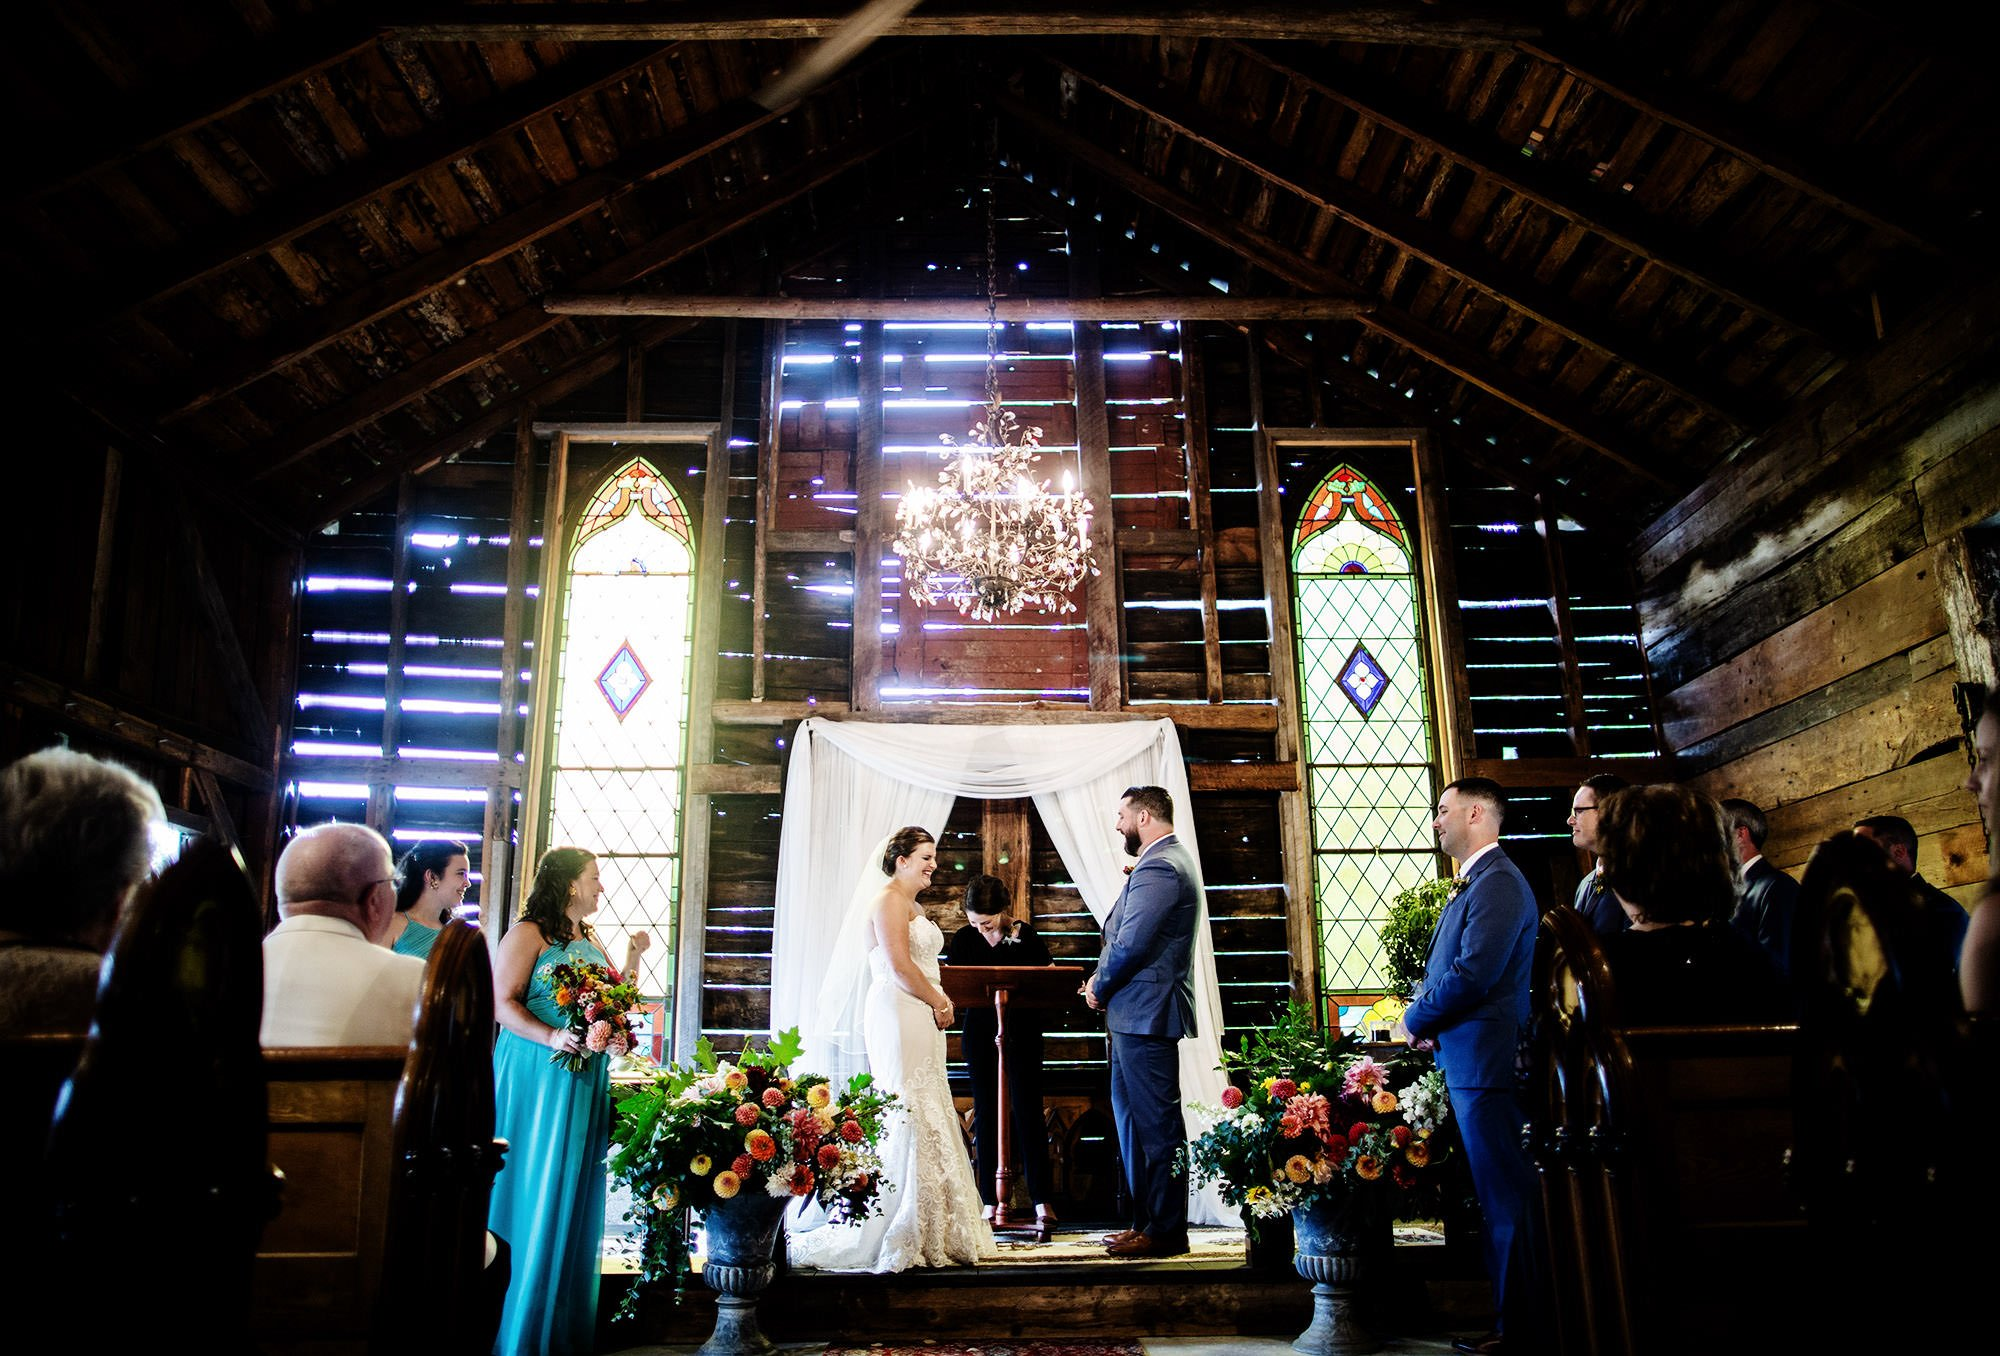 The wedding ceremony at Bishop Farm.